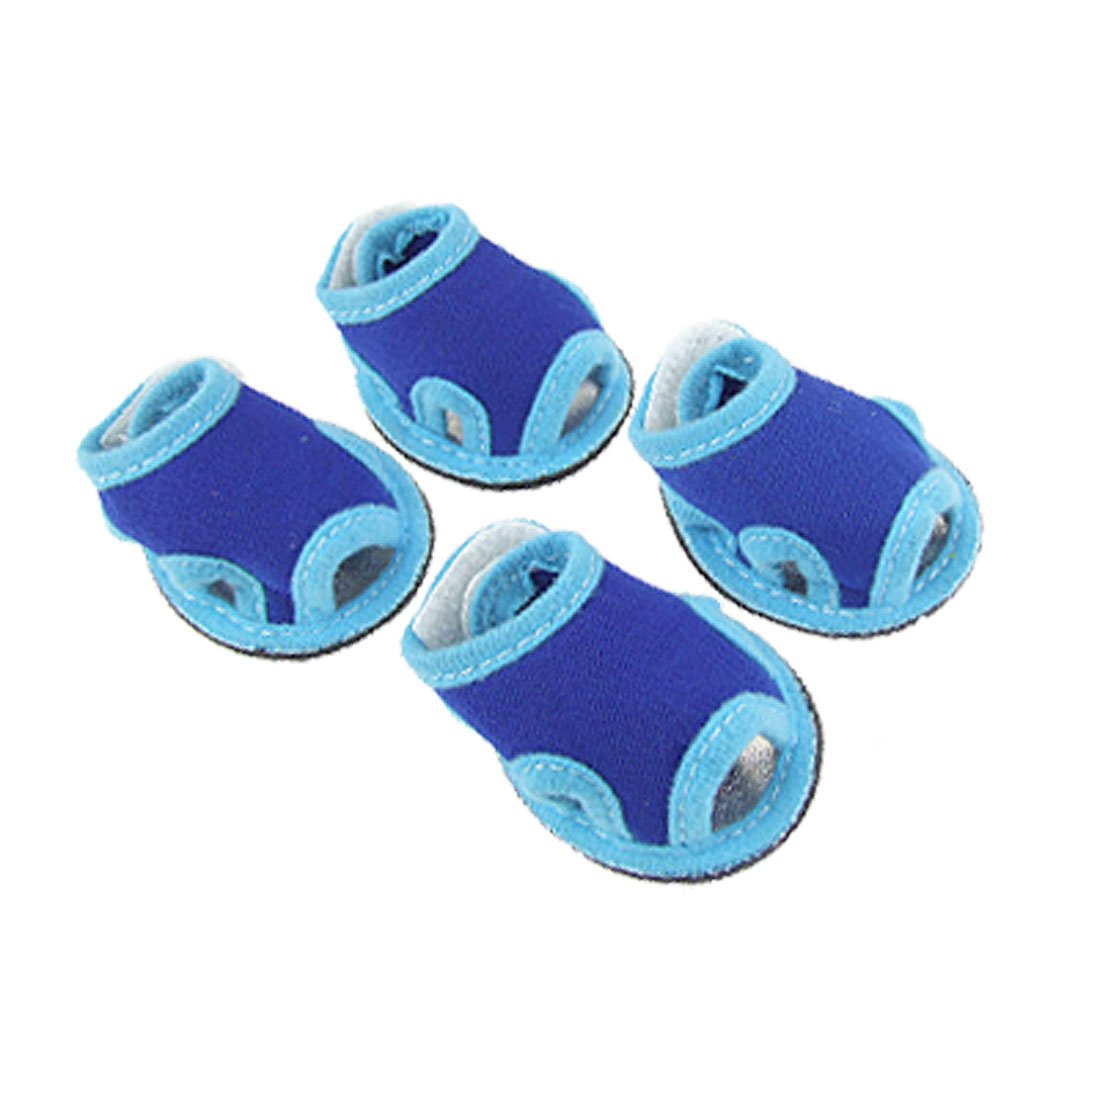 2 Pairs Blue Detachable Closure Shoes Pet Puppy Dog Sandals Sz 4